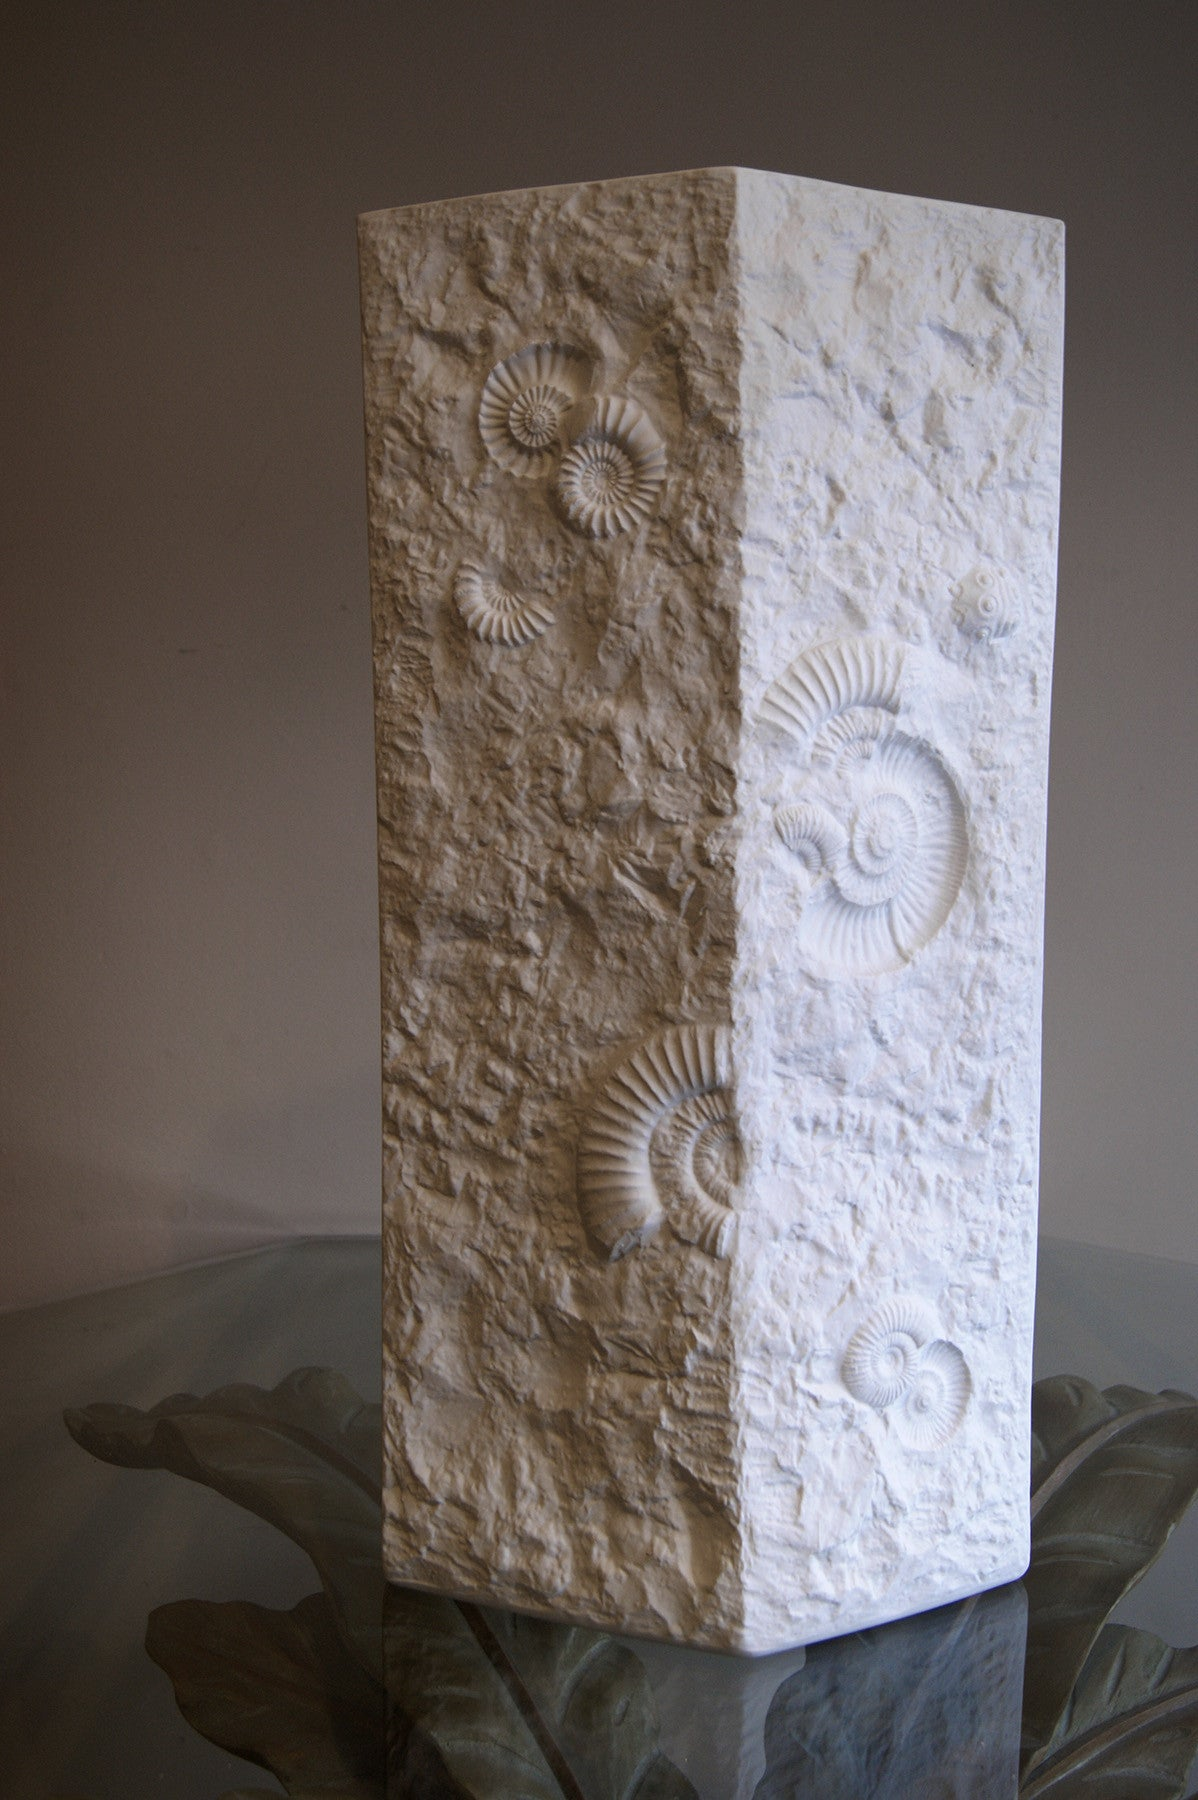 Unusually large 61 cm white ceramic vase cast with fossils circa 1960 signed A.K.